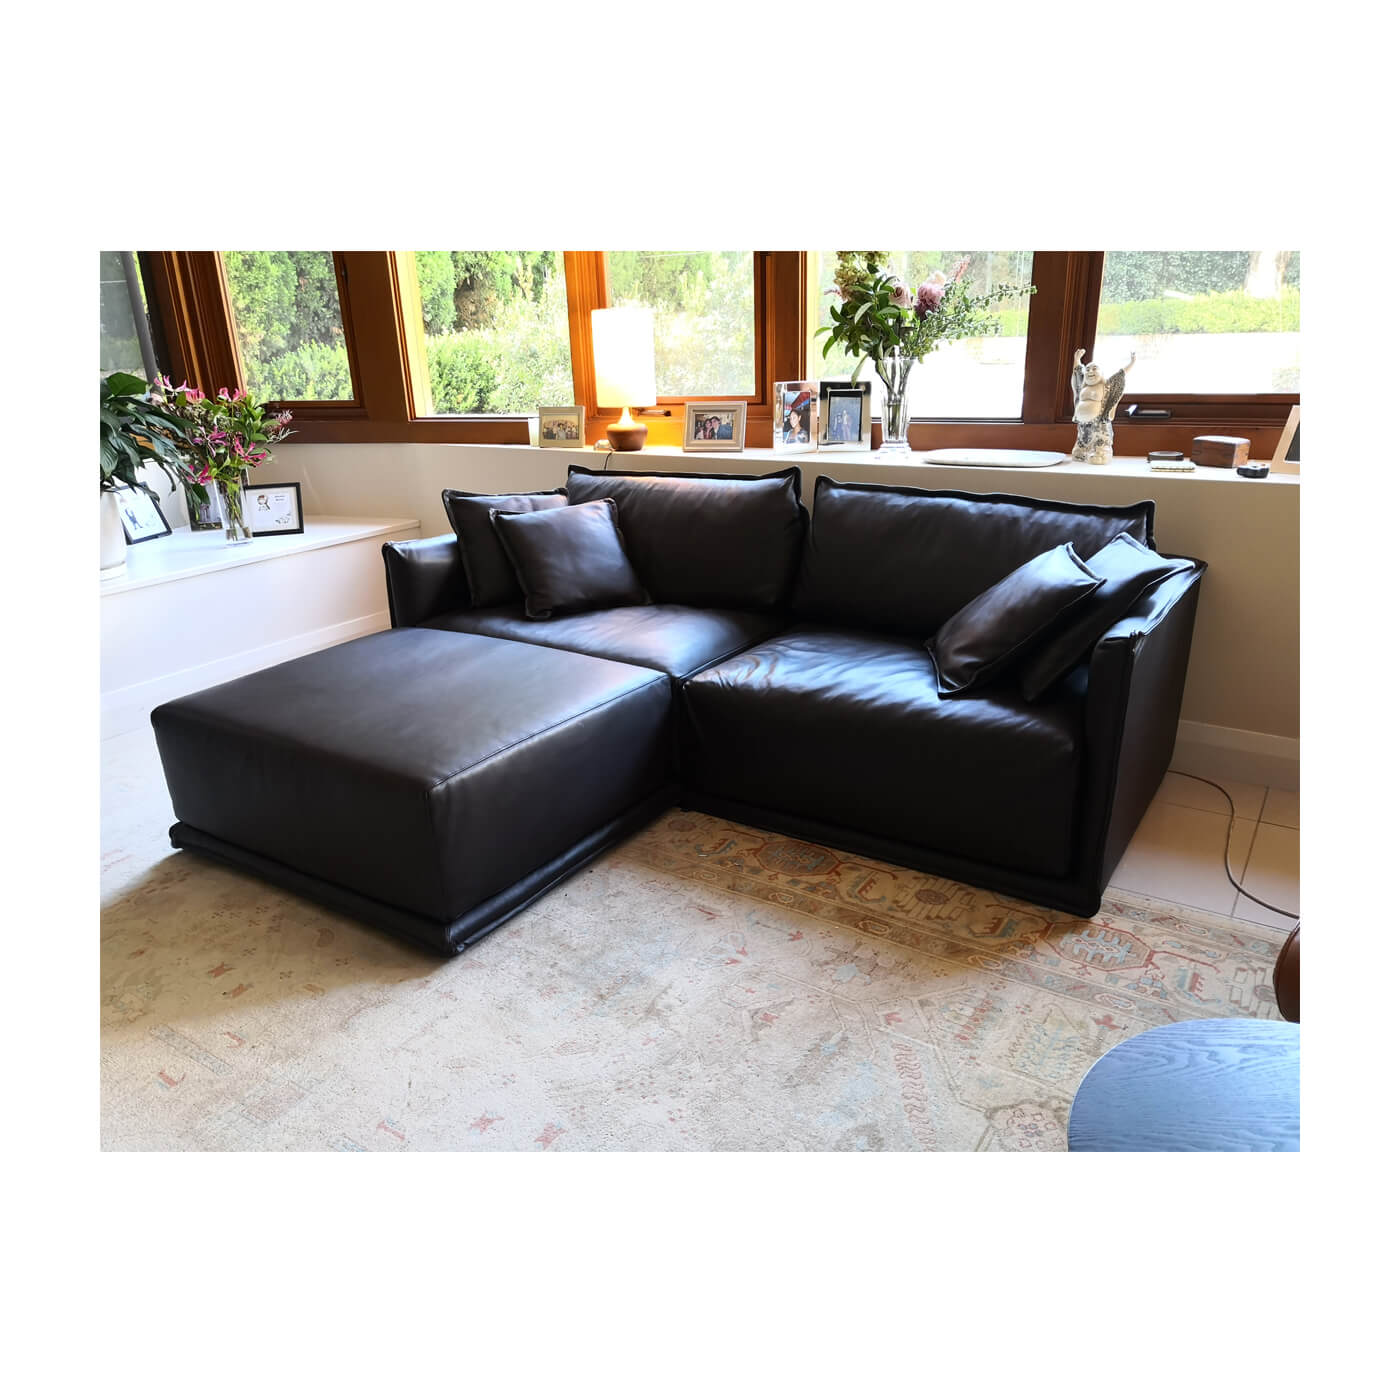 SP01 Max Brown leather sofa